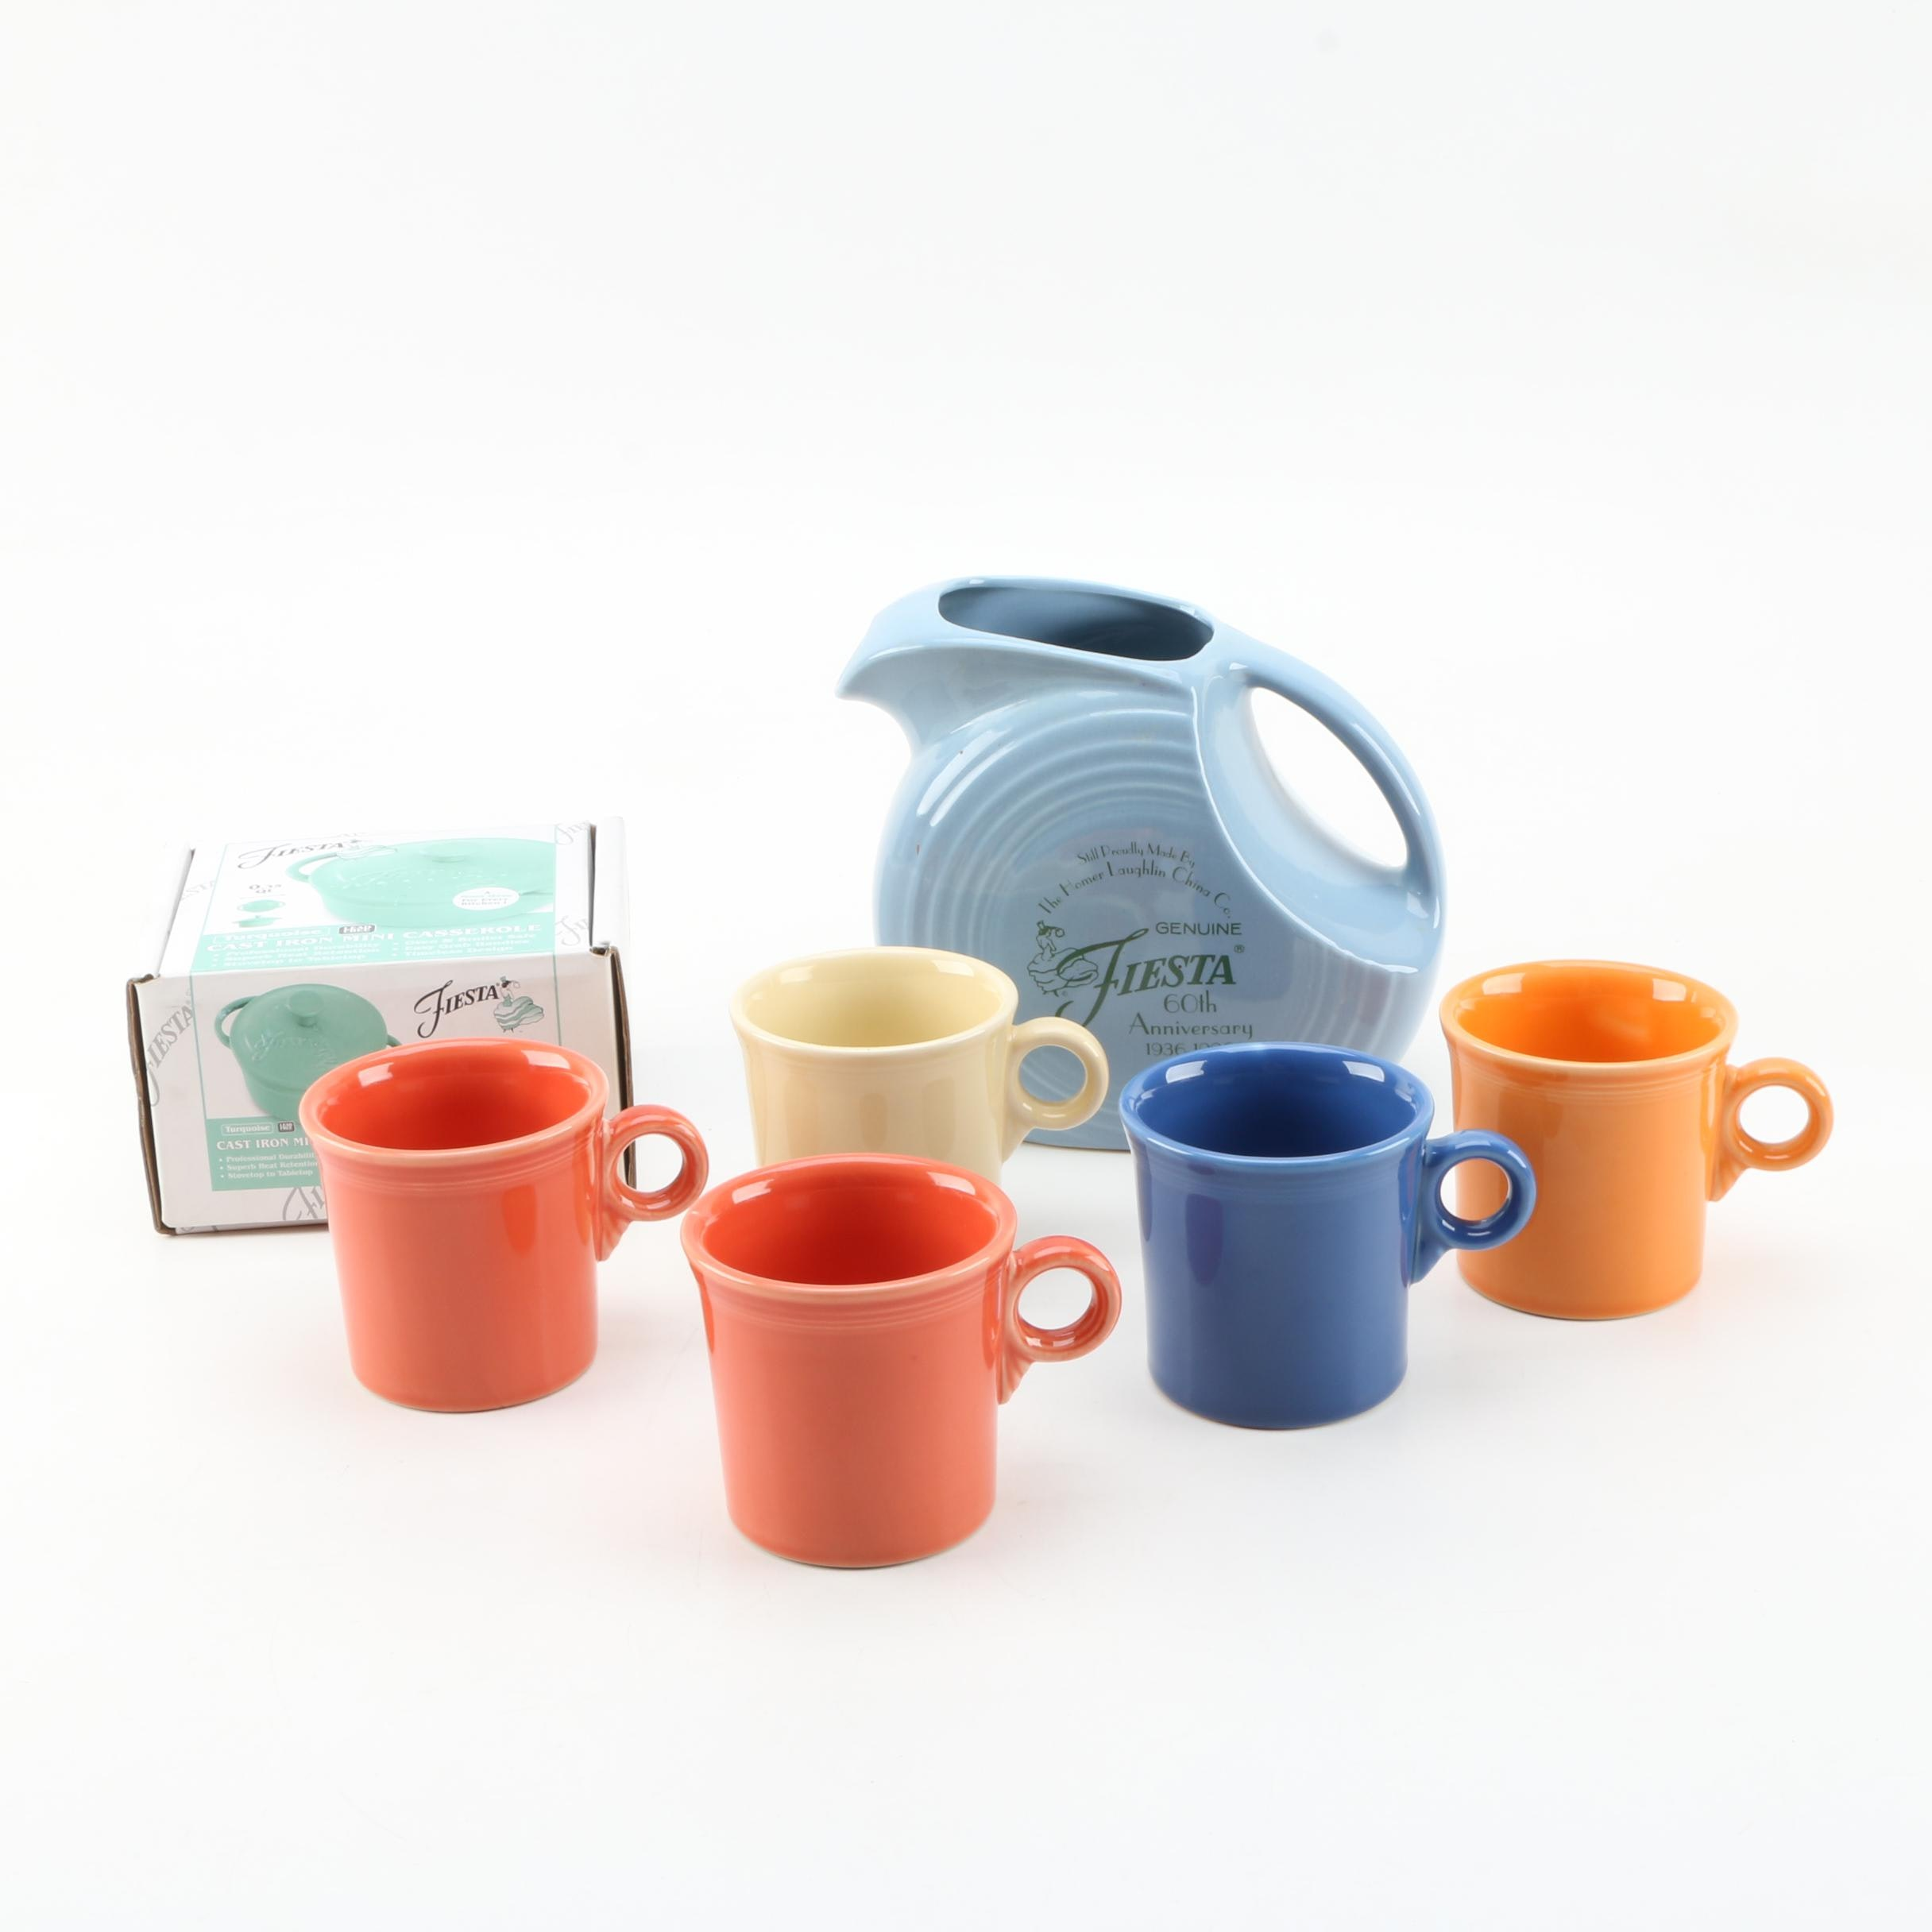 Collection of Fiesta Tableware